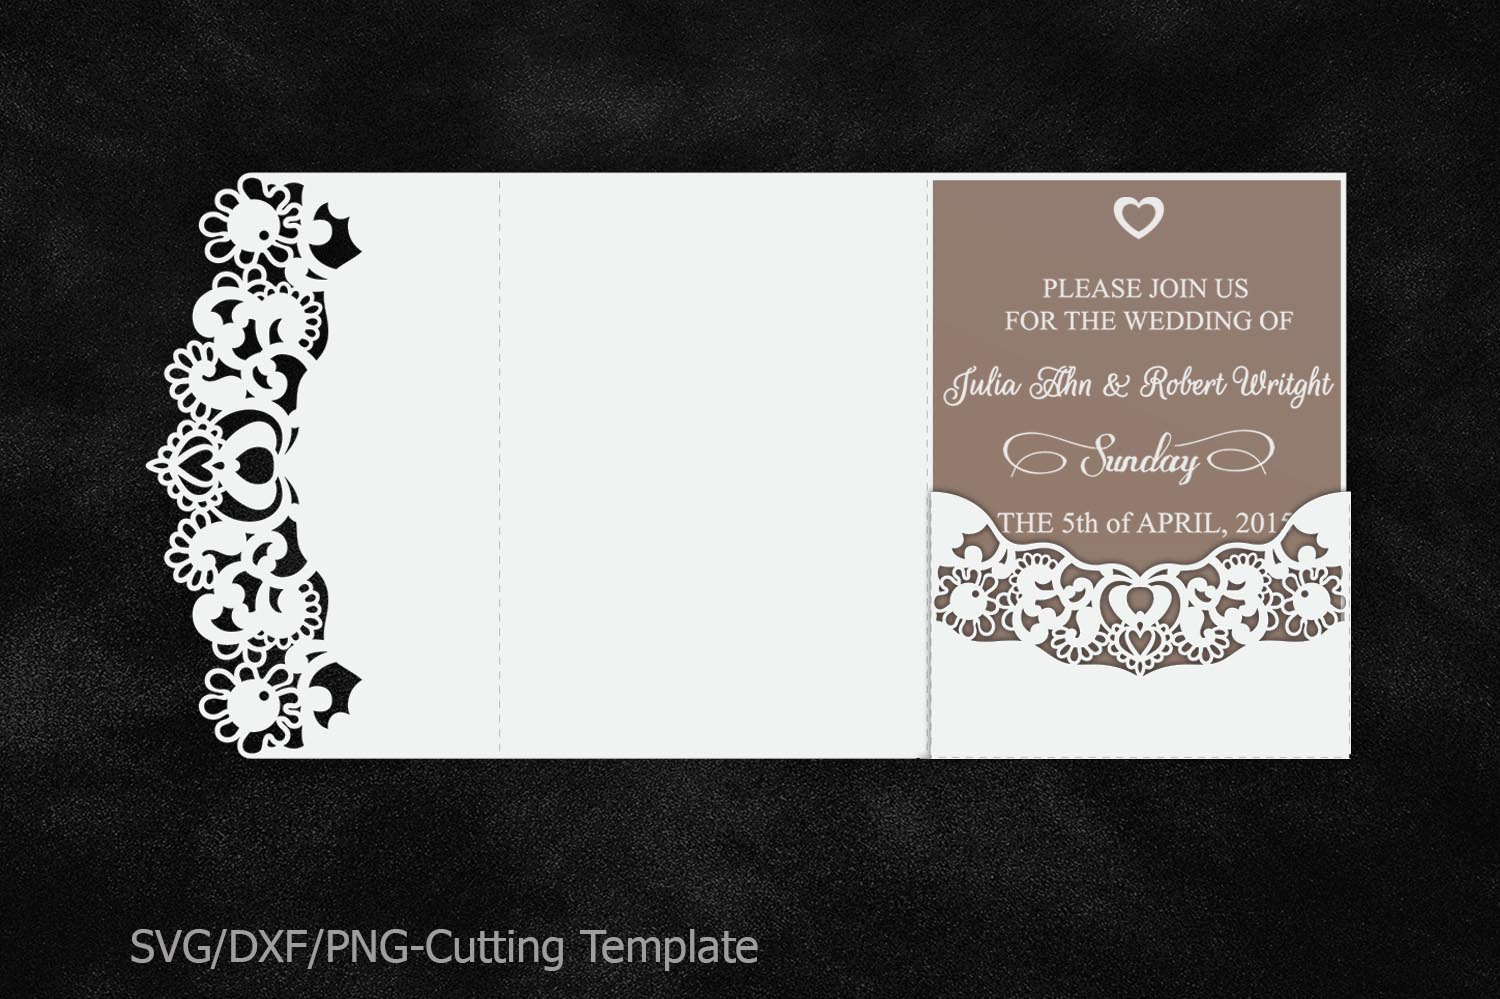 Laser Cut Out Wedding Invitations: Lace Wedding Invitation Template Laser Cut Pocket Invitation